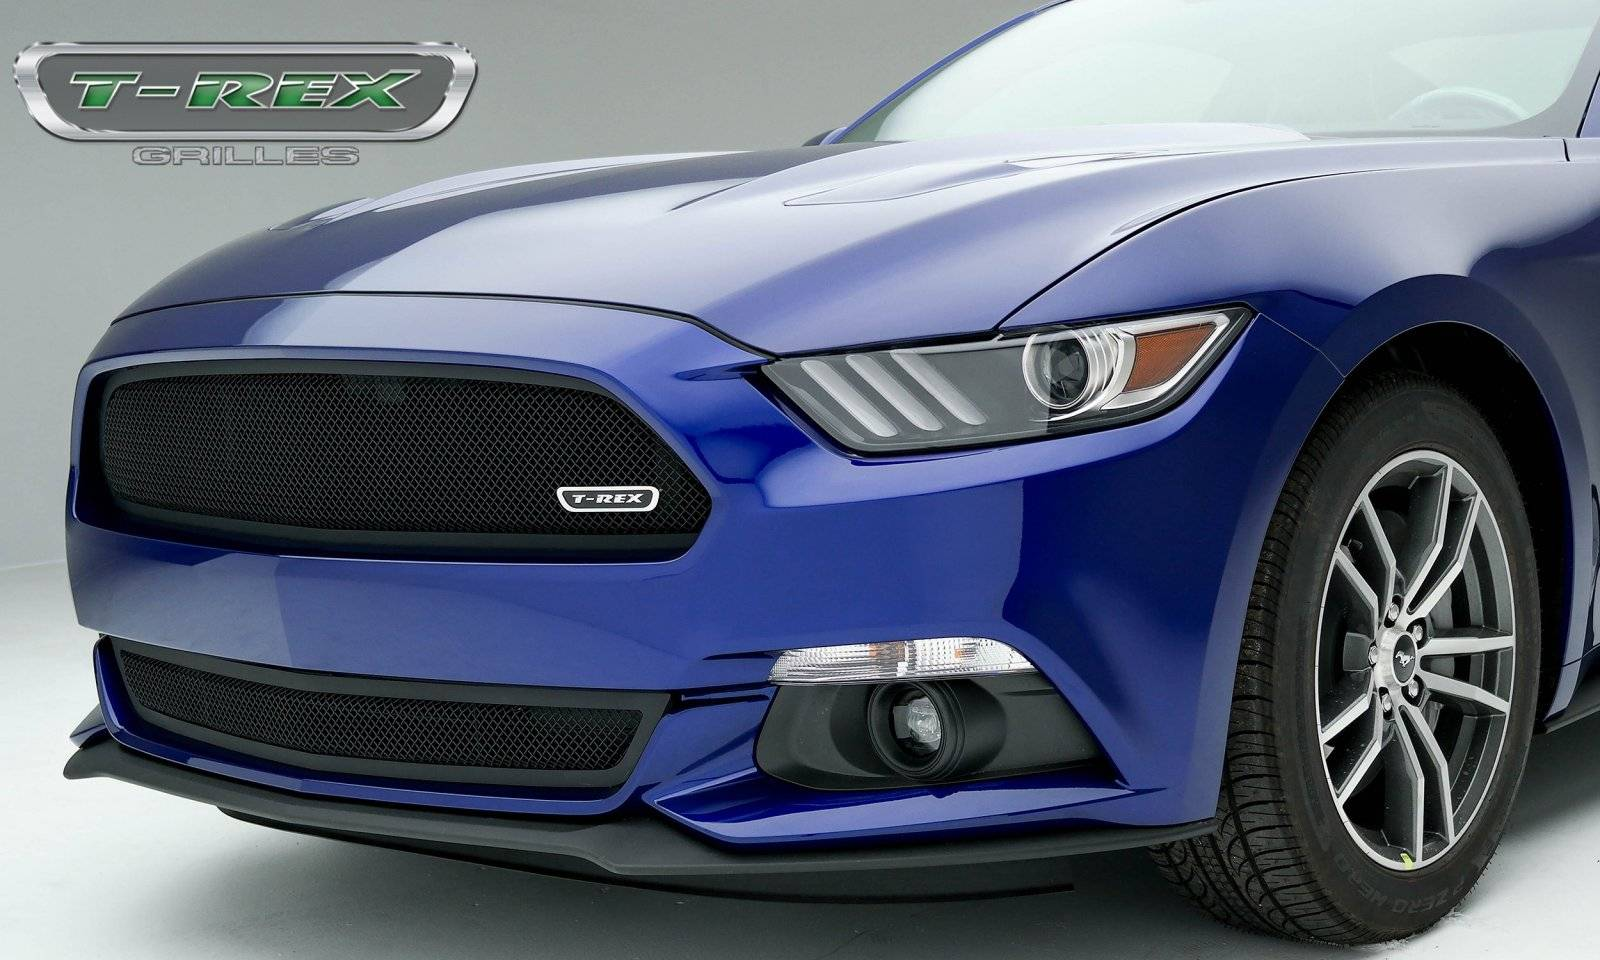 T-REX Ford Mustang GT - Upper Class - Formed Mesh Grille, Main Full Opening with Flat Black Powder Finish - Pt # 51530